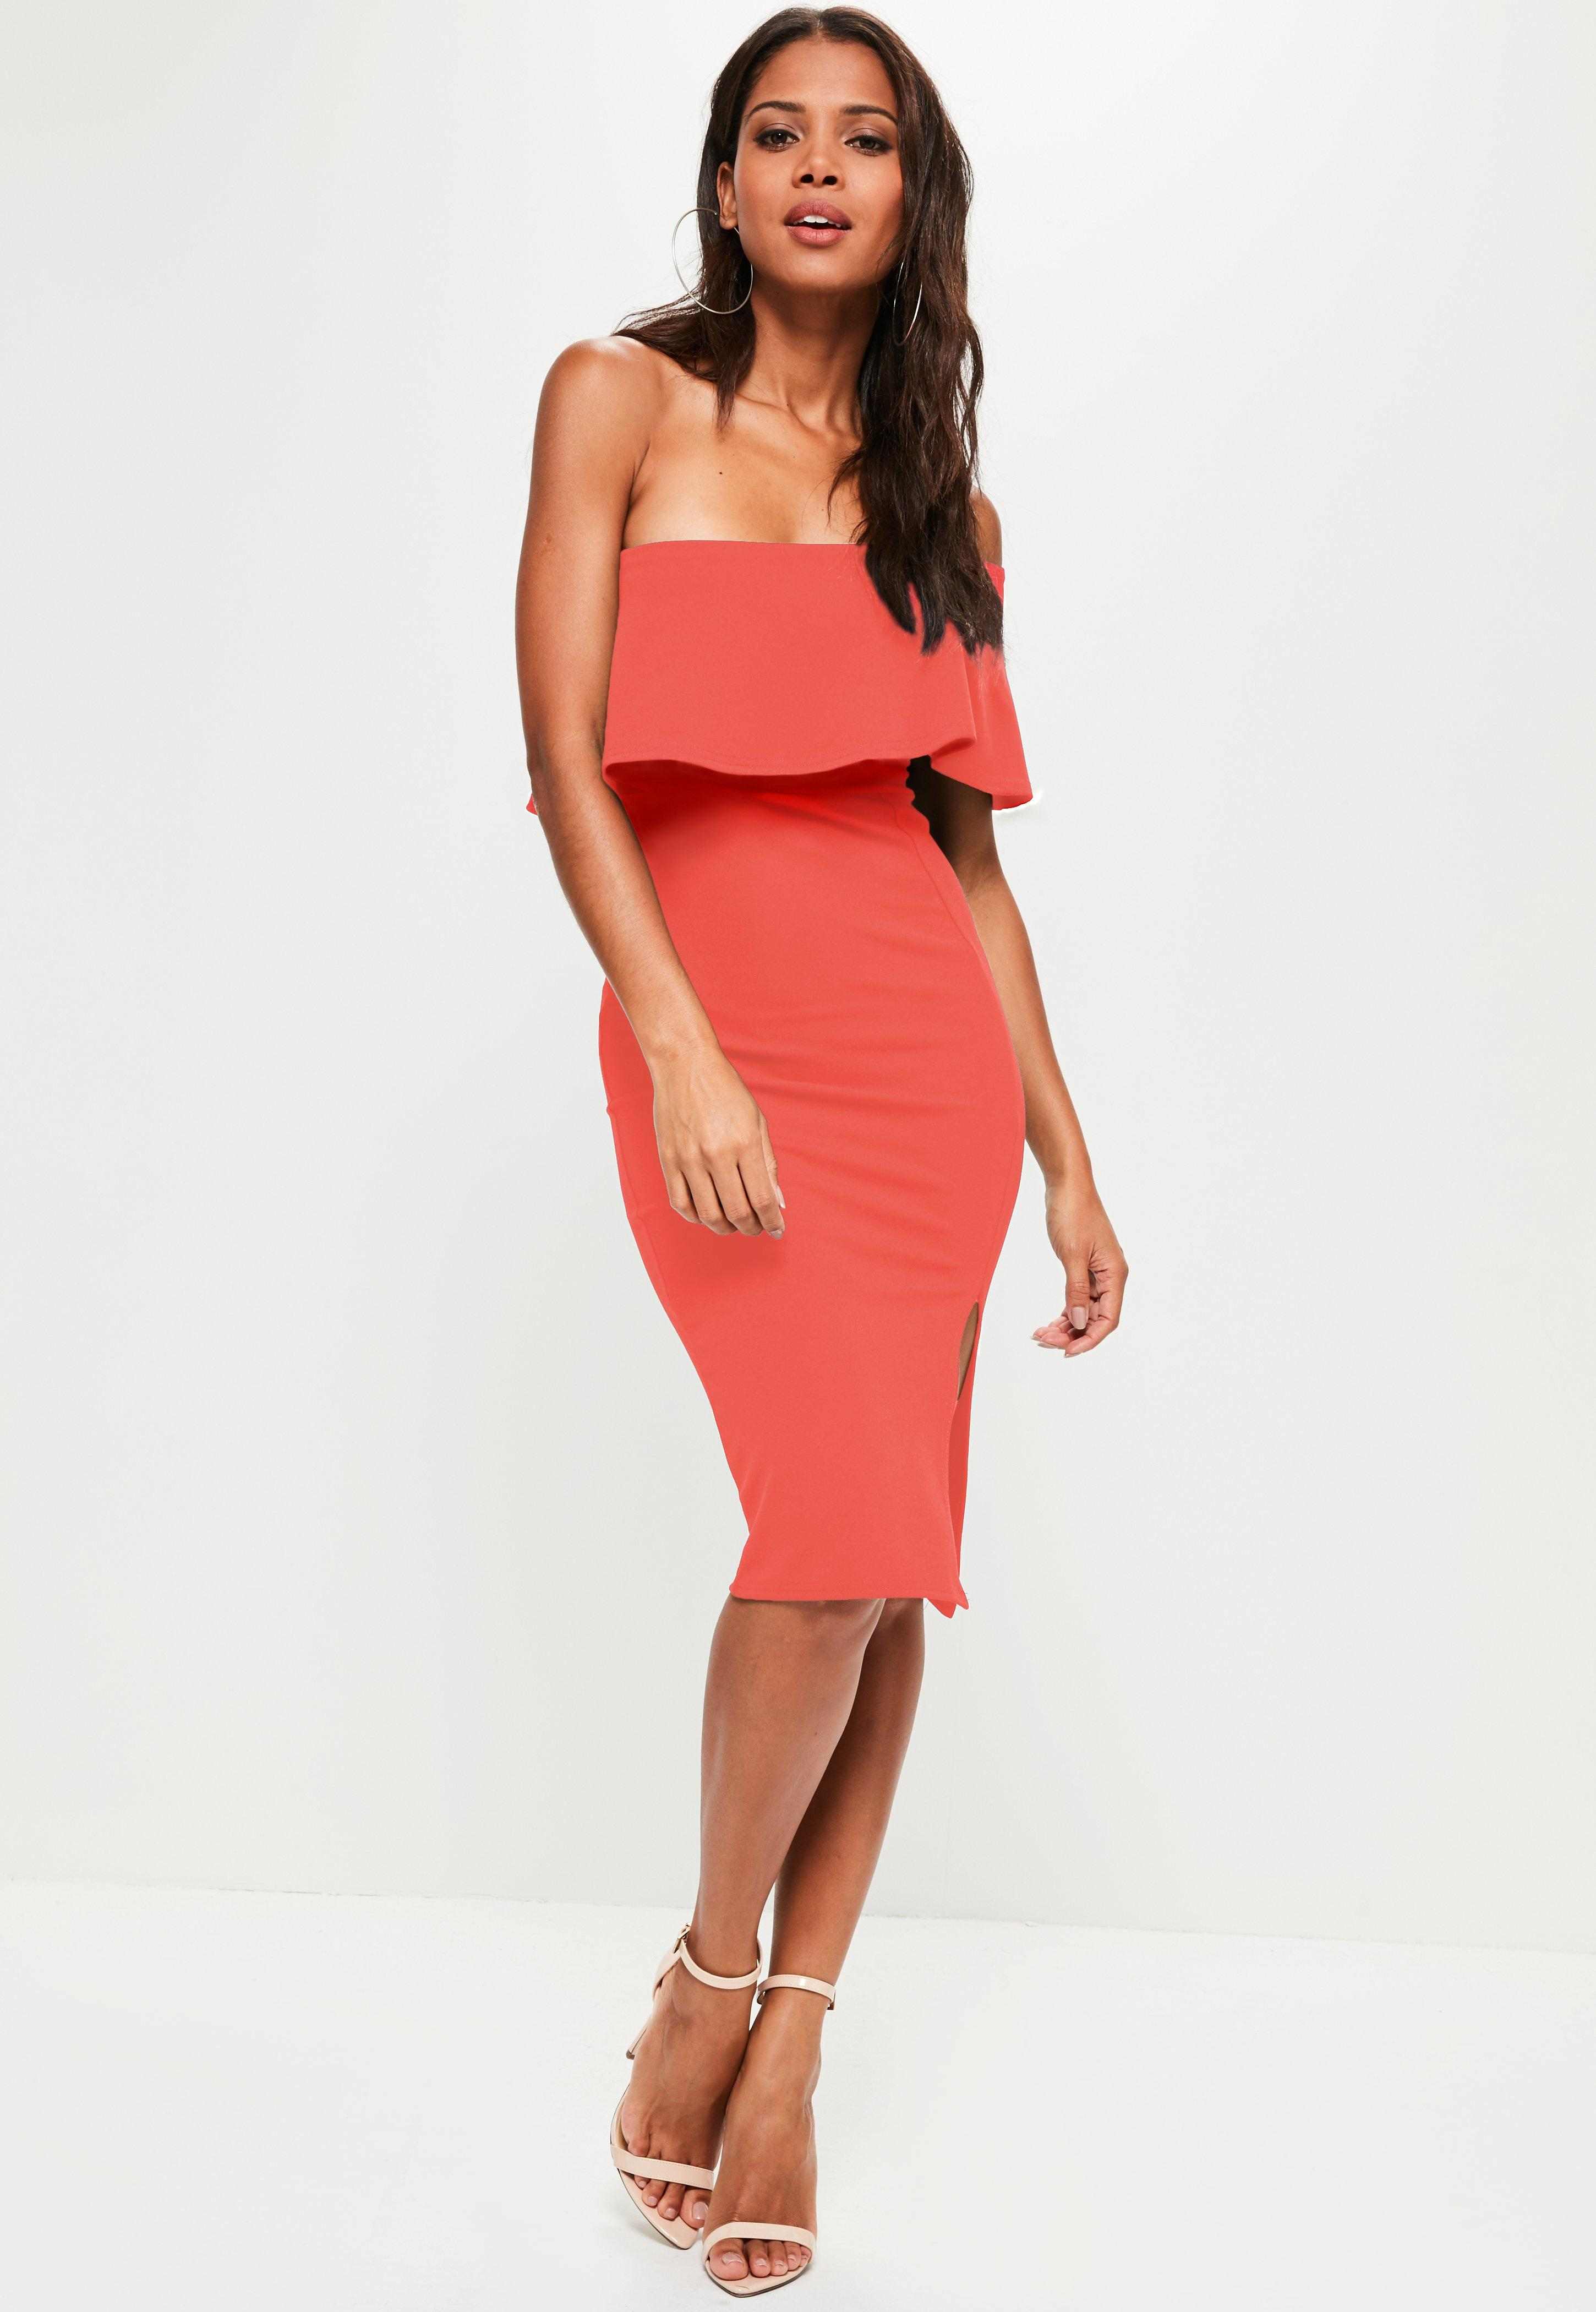 Buy Cheap Cheapest Price Missguided Blush One Shoulder Frill Split Midi Dress Free Shipping Cheapest Price Free Shipping Best Store To Get OAQI2N